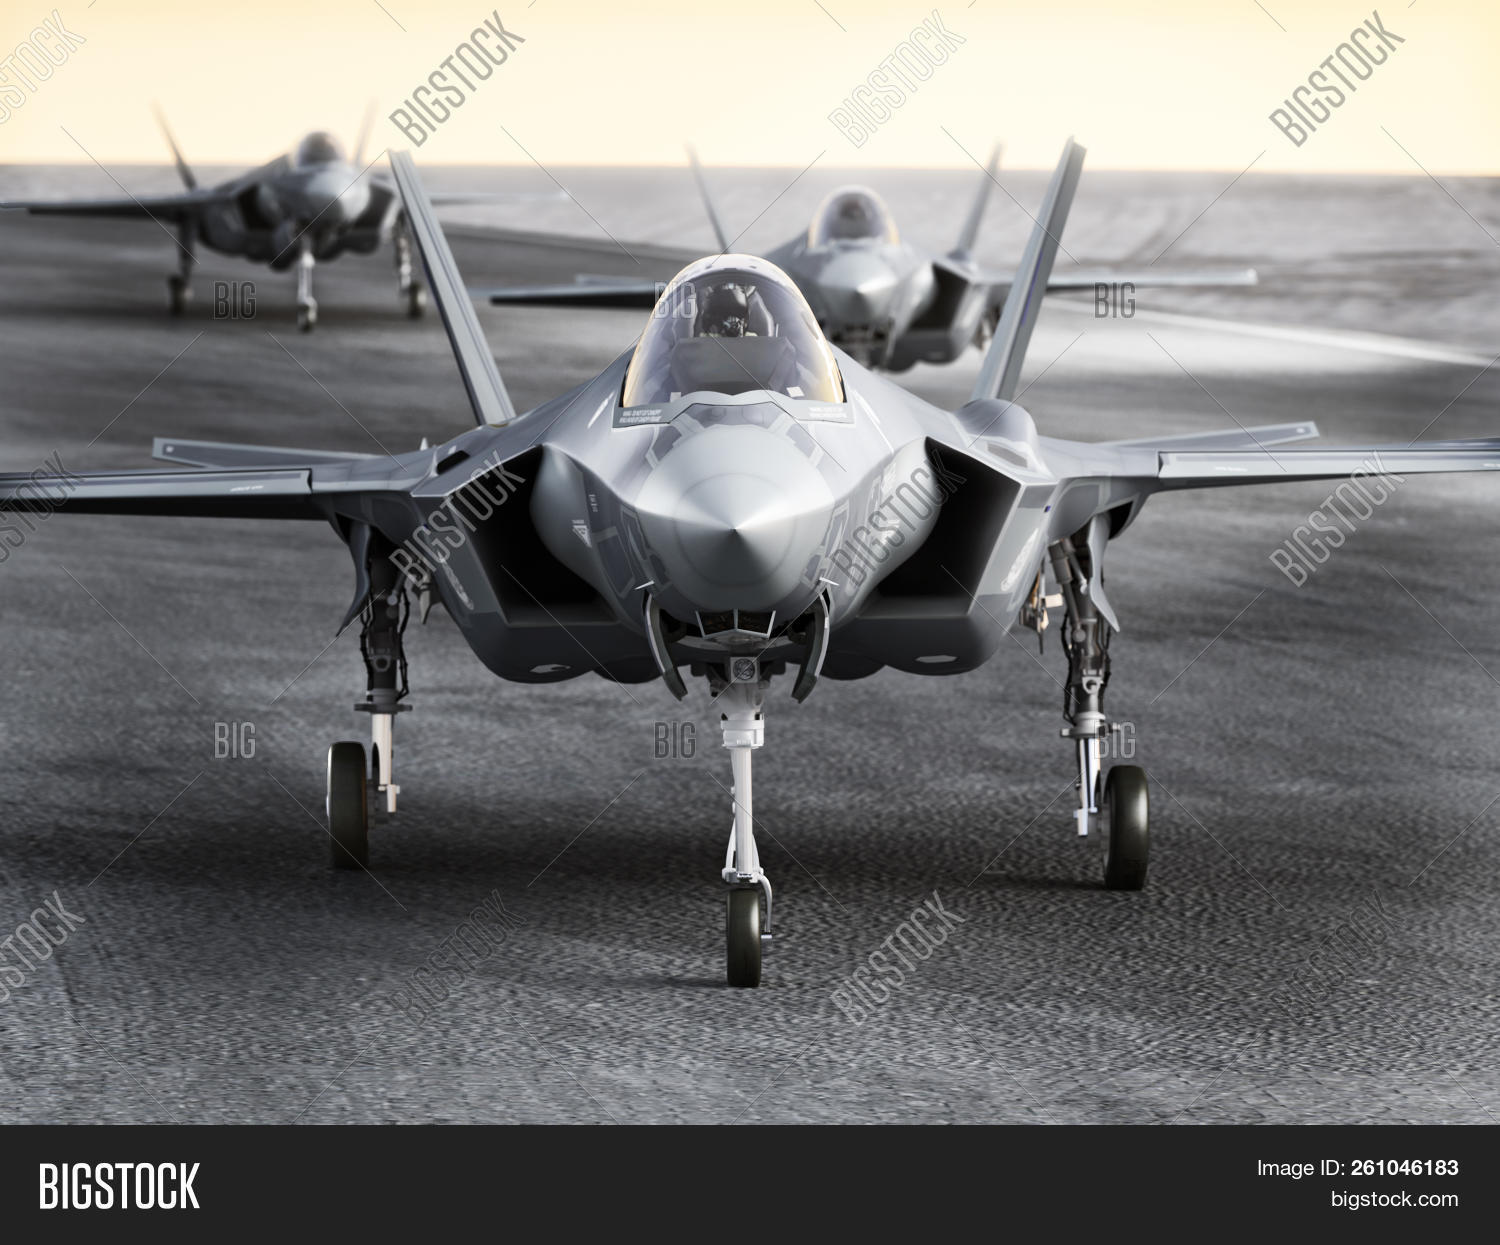 3d,advanced,aeronautics,air,aircraft,attack,aviation,bomber,close-up,combat,corps,demonstration,design,display,f-35,f35,fighter,fighting,force,front,generation,illustration,industrial,industry,jet,joint,machine,marine,military,modern,nation,navy,new,next,plane,rendering,runway,show,static,stealth,strike,supersonic,system,takeoff,tarmac,technology,transportation,vehicle,view,weapon